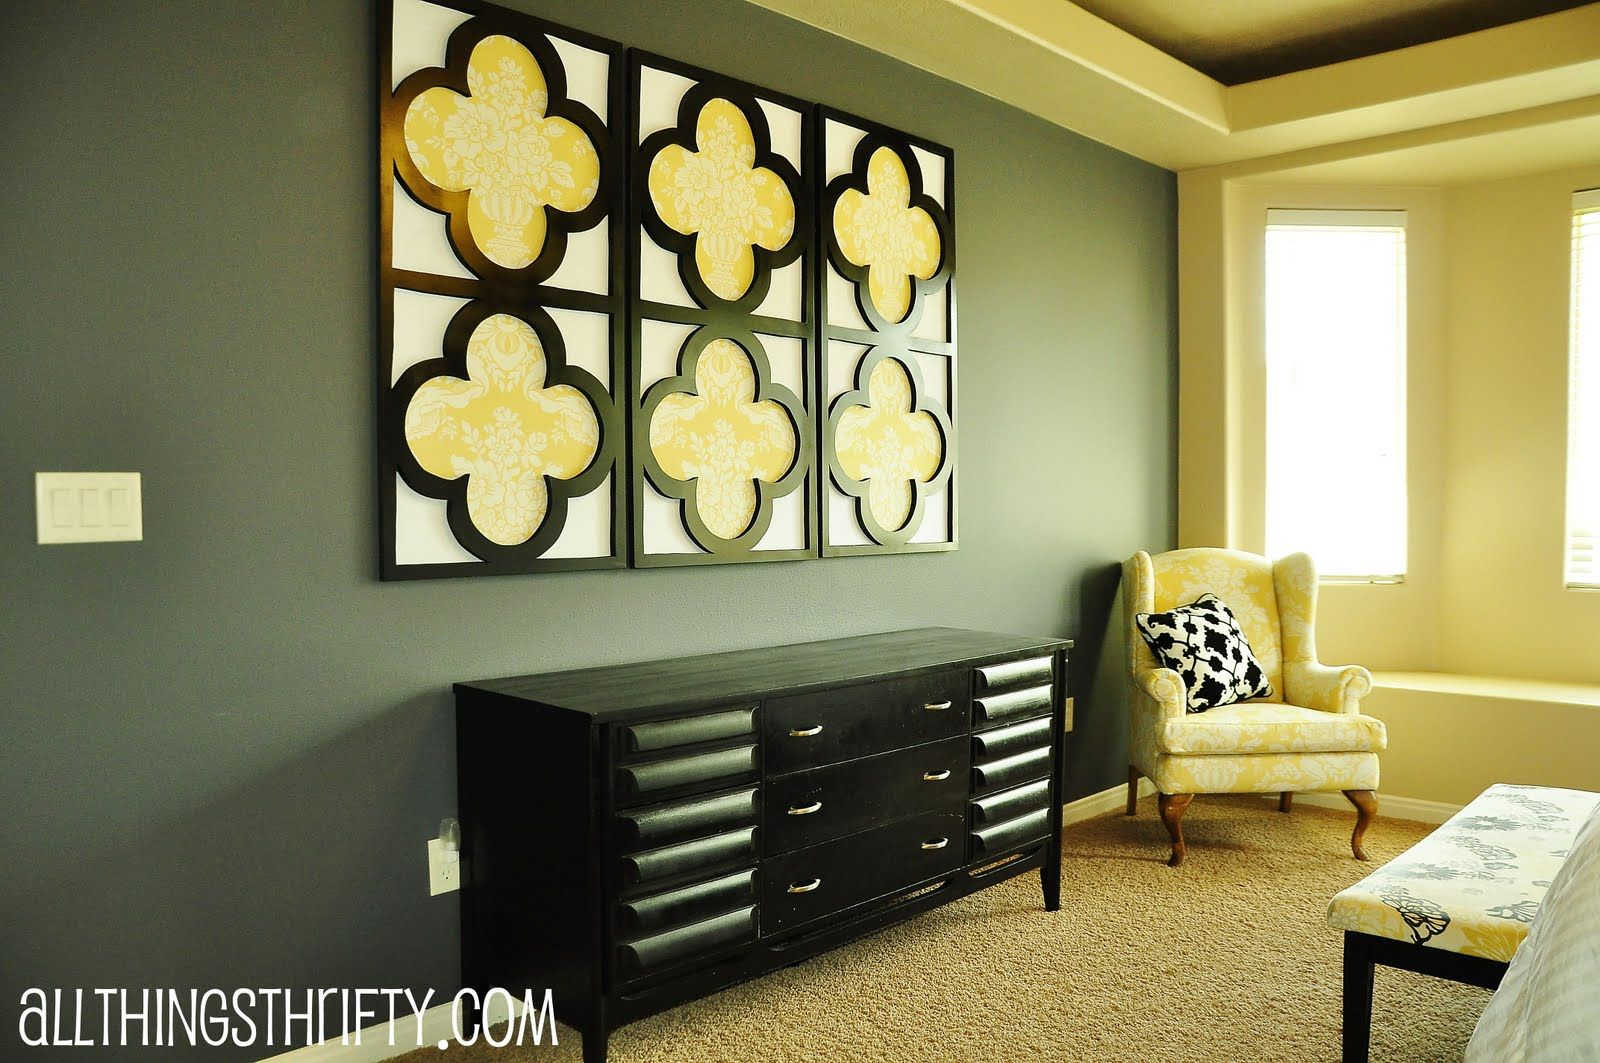 Tutorial: Quatrefoil DIY Decorative Wall Art | Quatrefoil ...